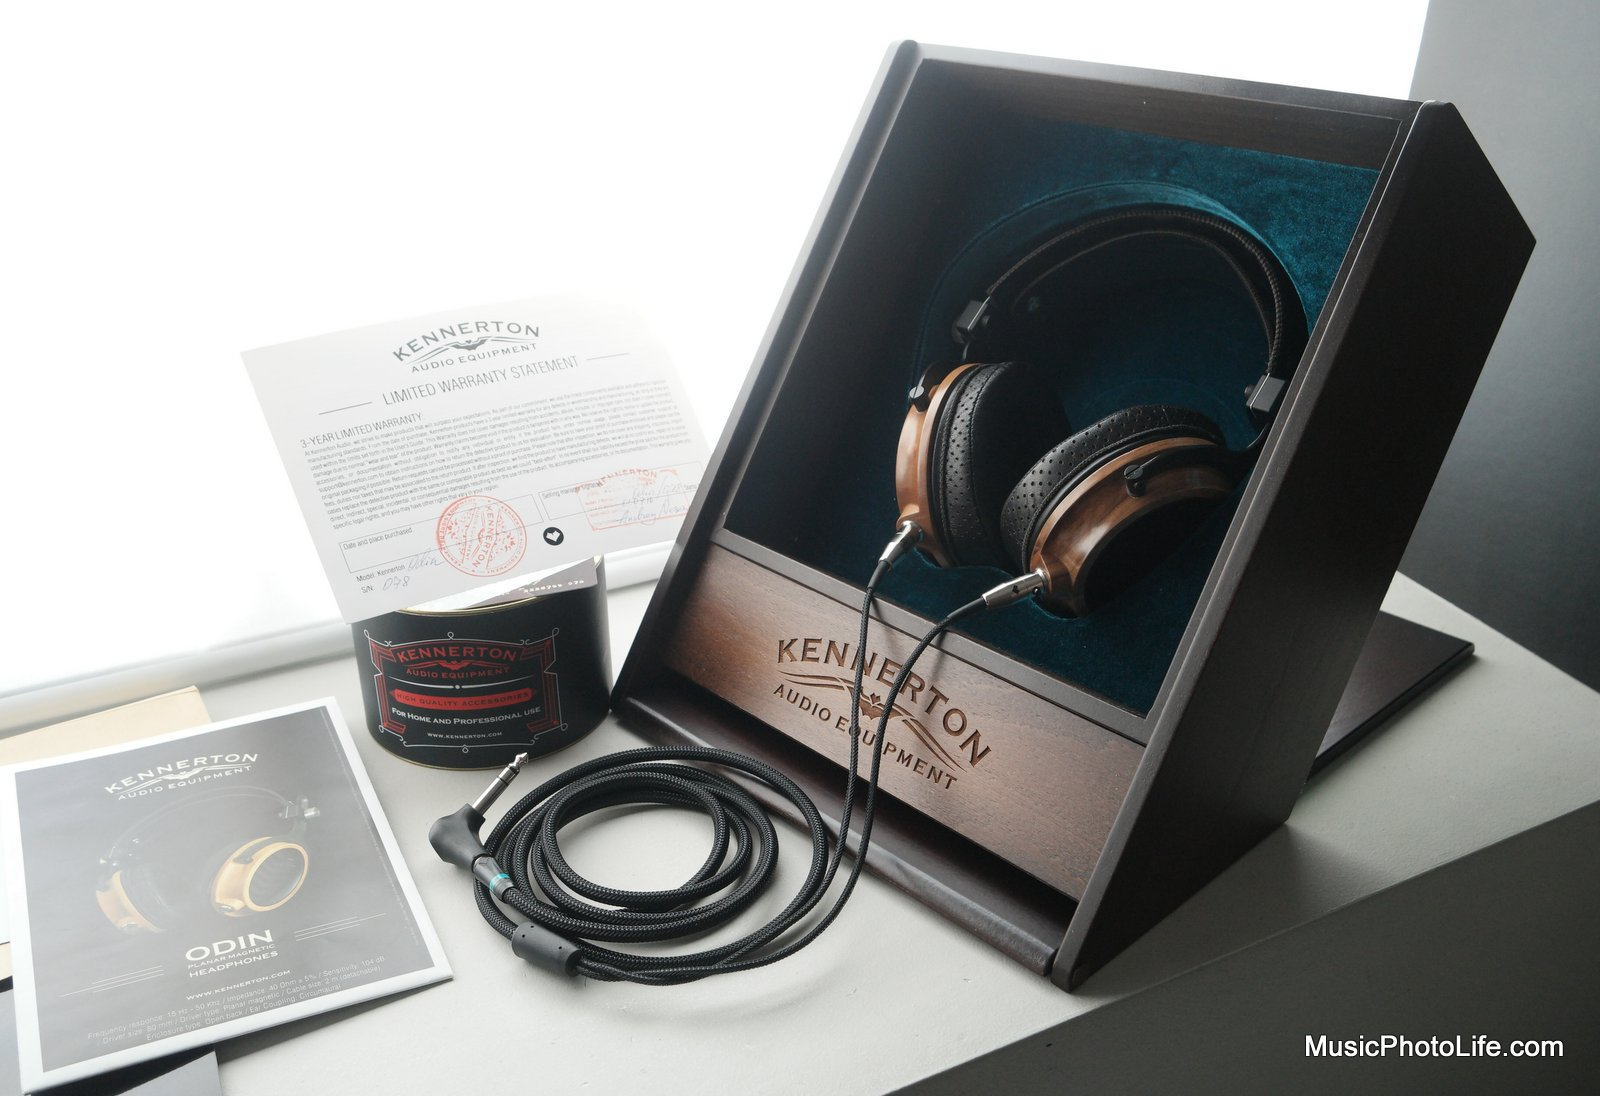 Kennerton Odin review by musicphotolife.com